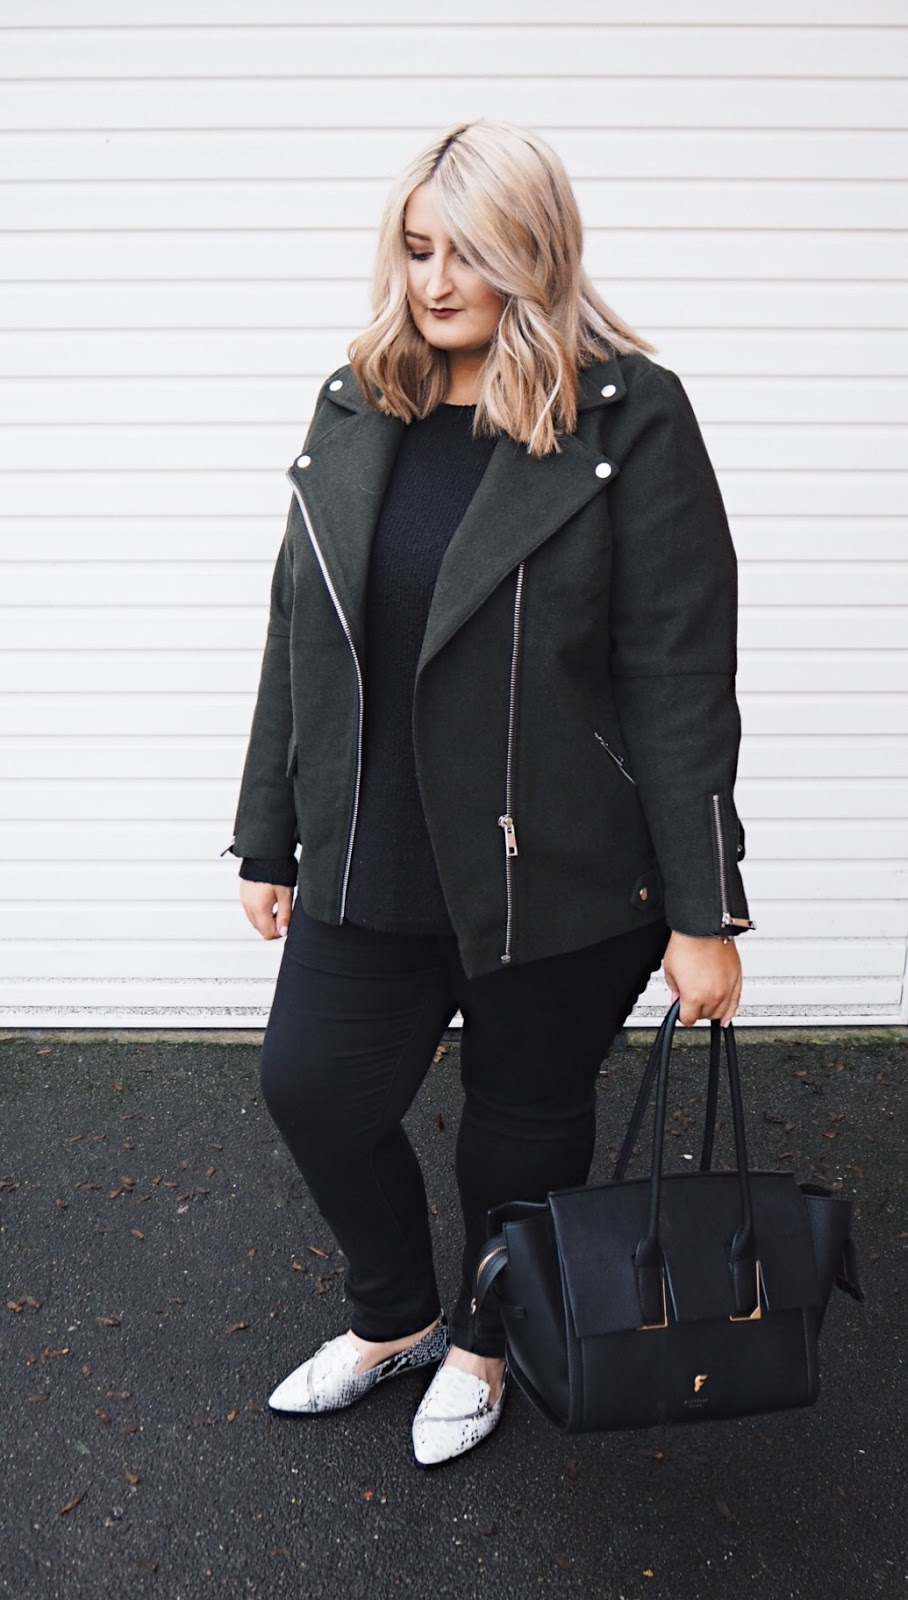 Plus size white woman wearing black jeans, black jumper, khaki River Island biker jacket, ASOS crocodile print loafers with Fiorelli handbag standing against a white wall